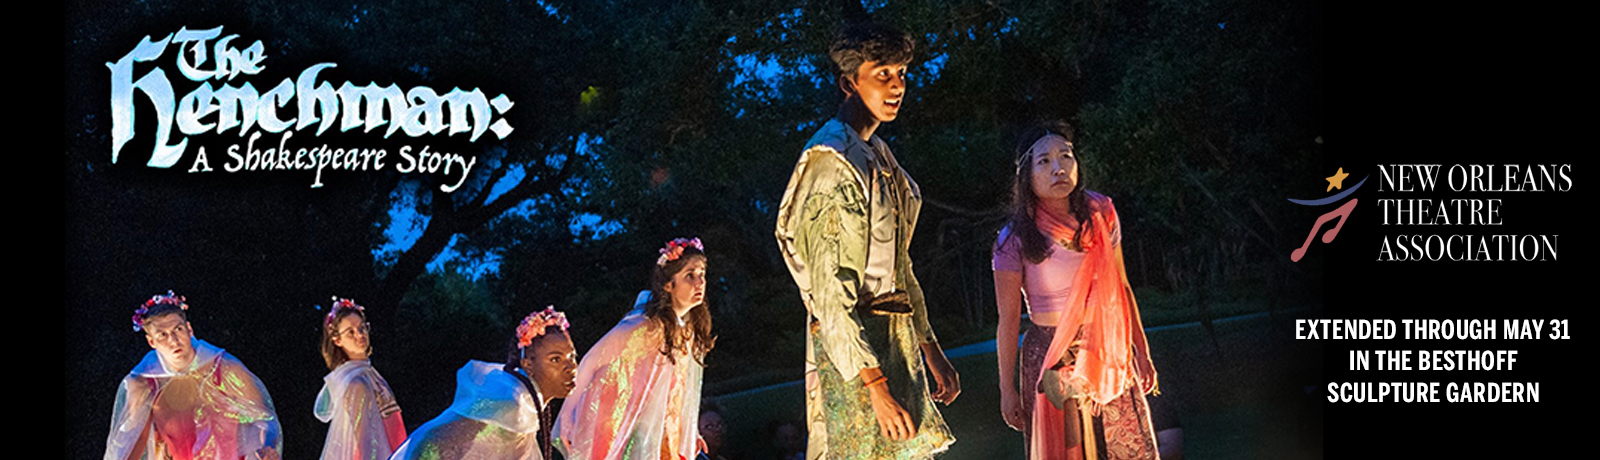 Gather in the Besthoff Sculpture Garden for an imagined sequel to William Shakespeare's A Midsummer Night's Dream.